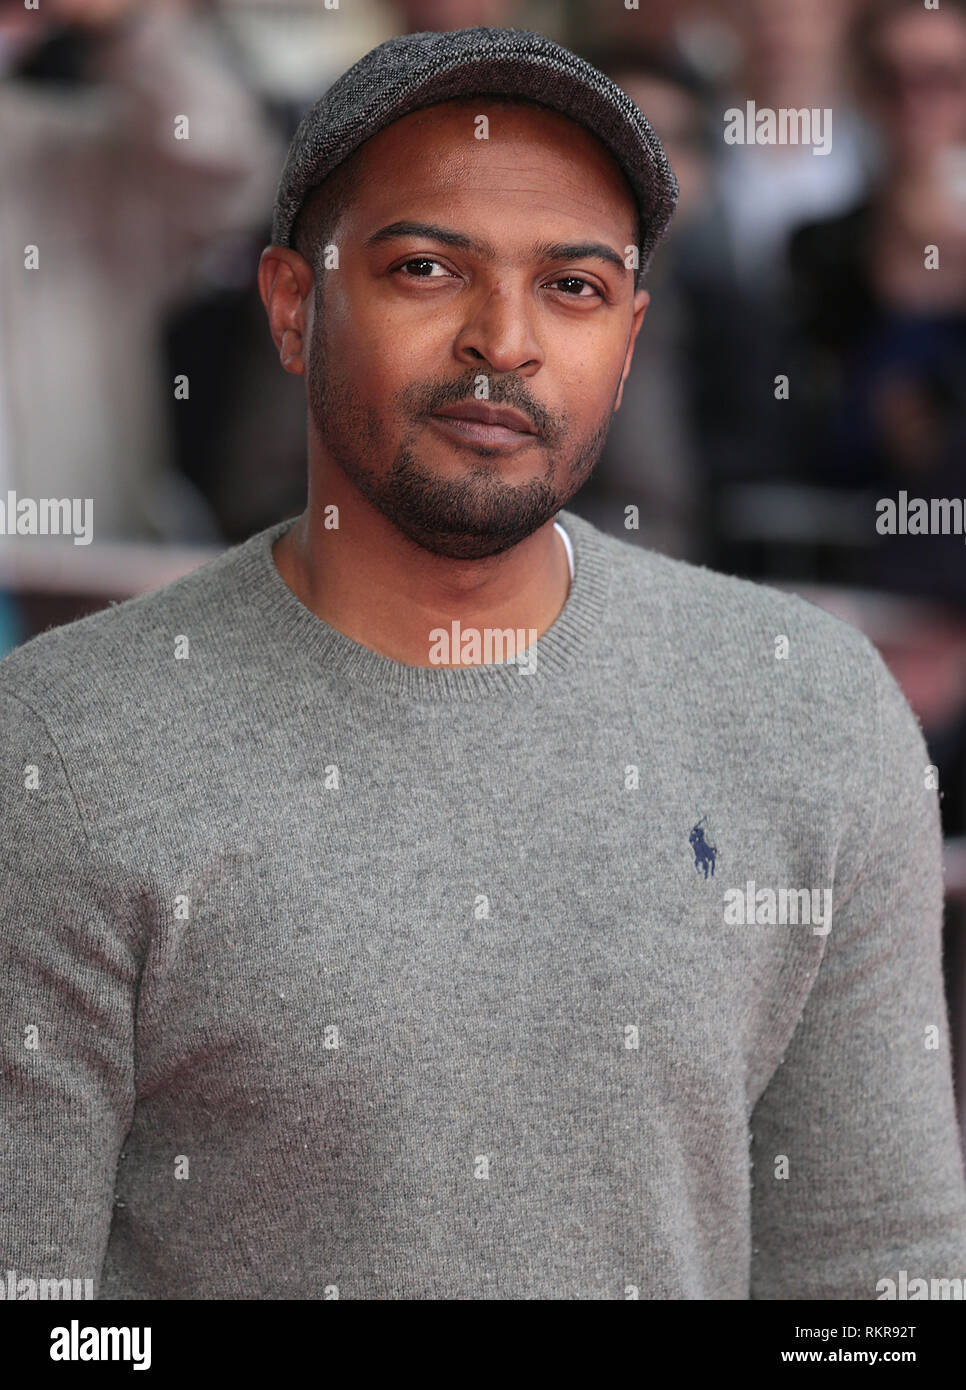 London, UK, 5th June 2014 Noel Clarke attends the 'Belle' UK Premiere at BFI Southbank - Stock Image